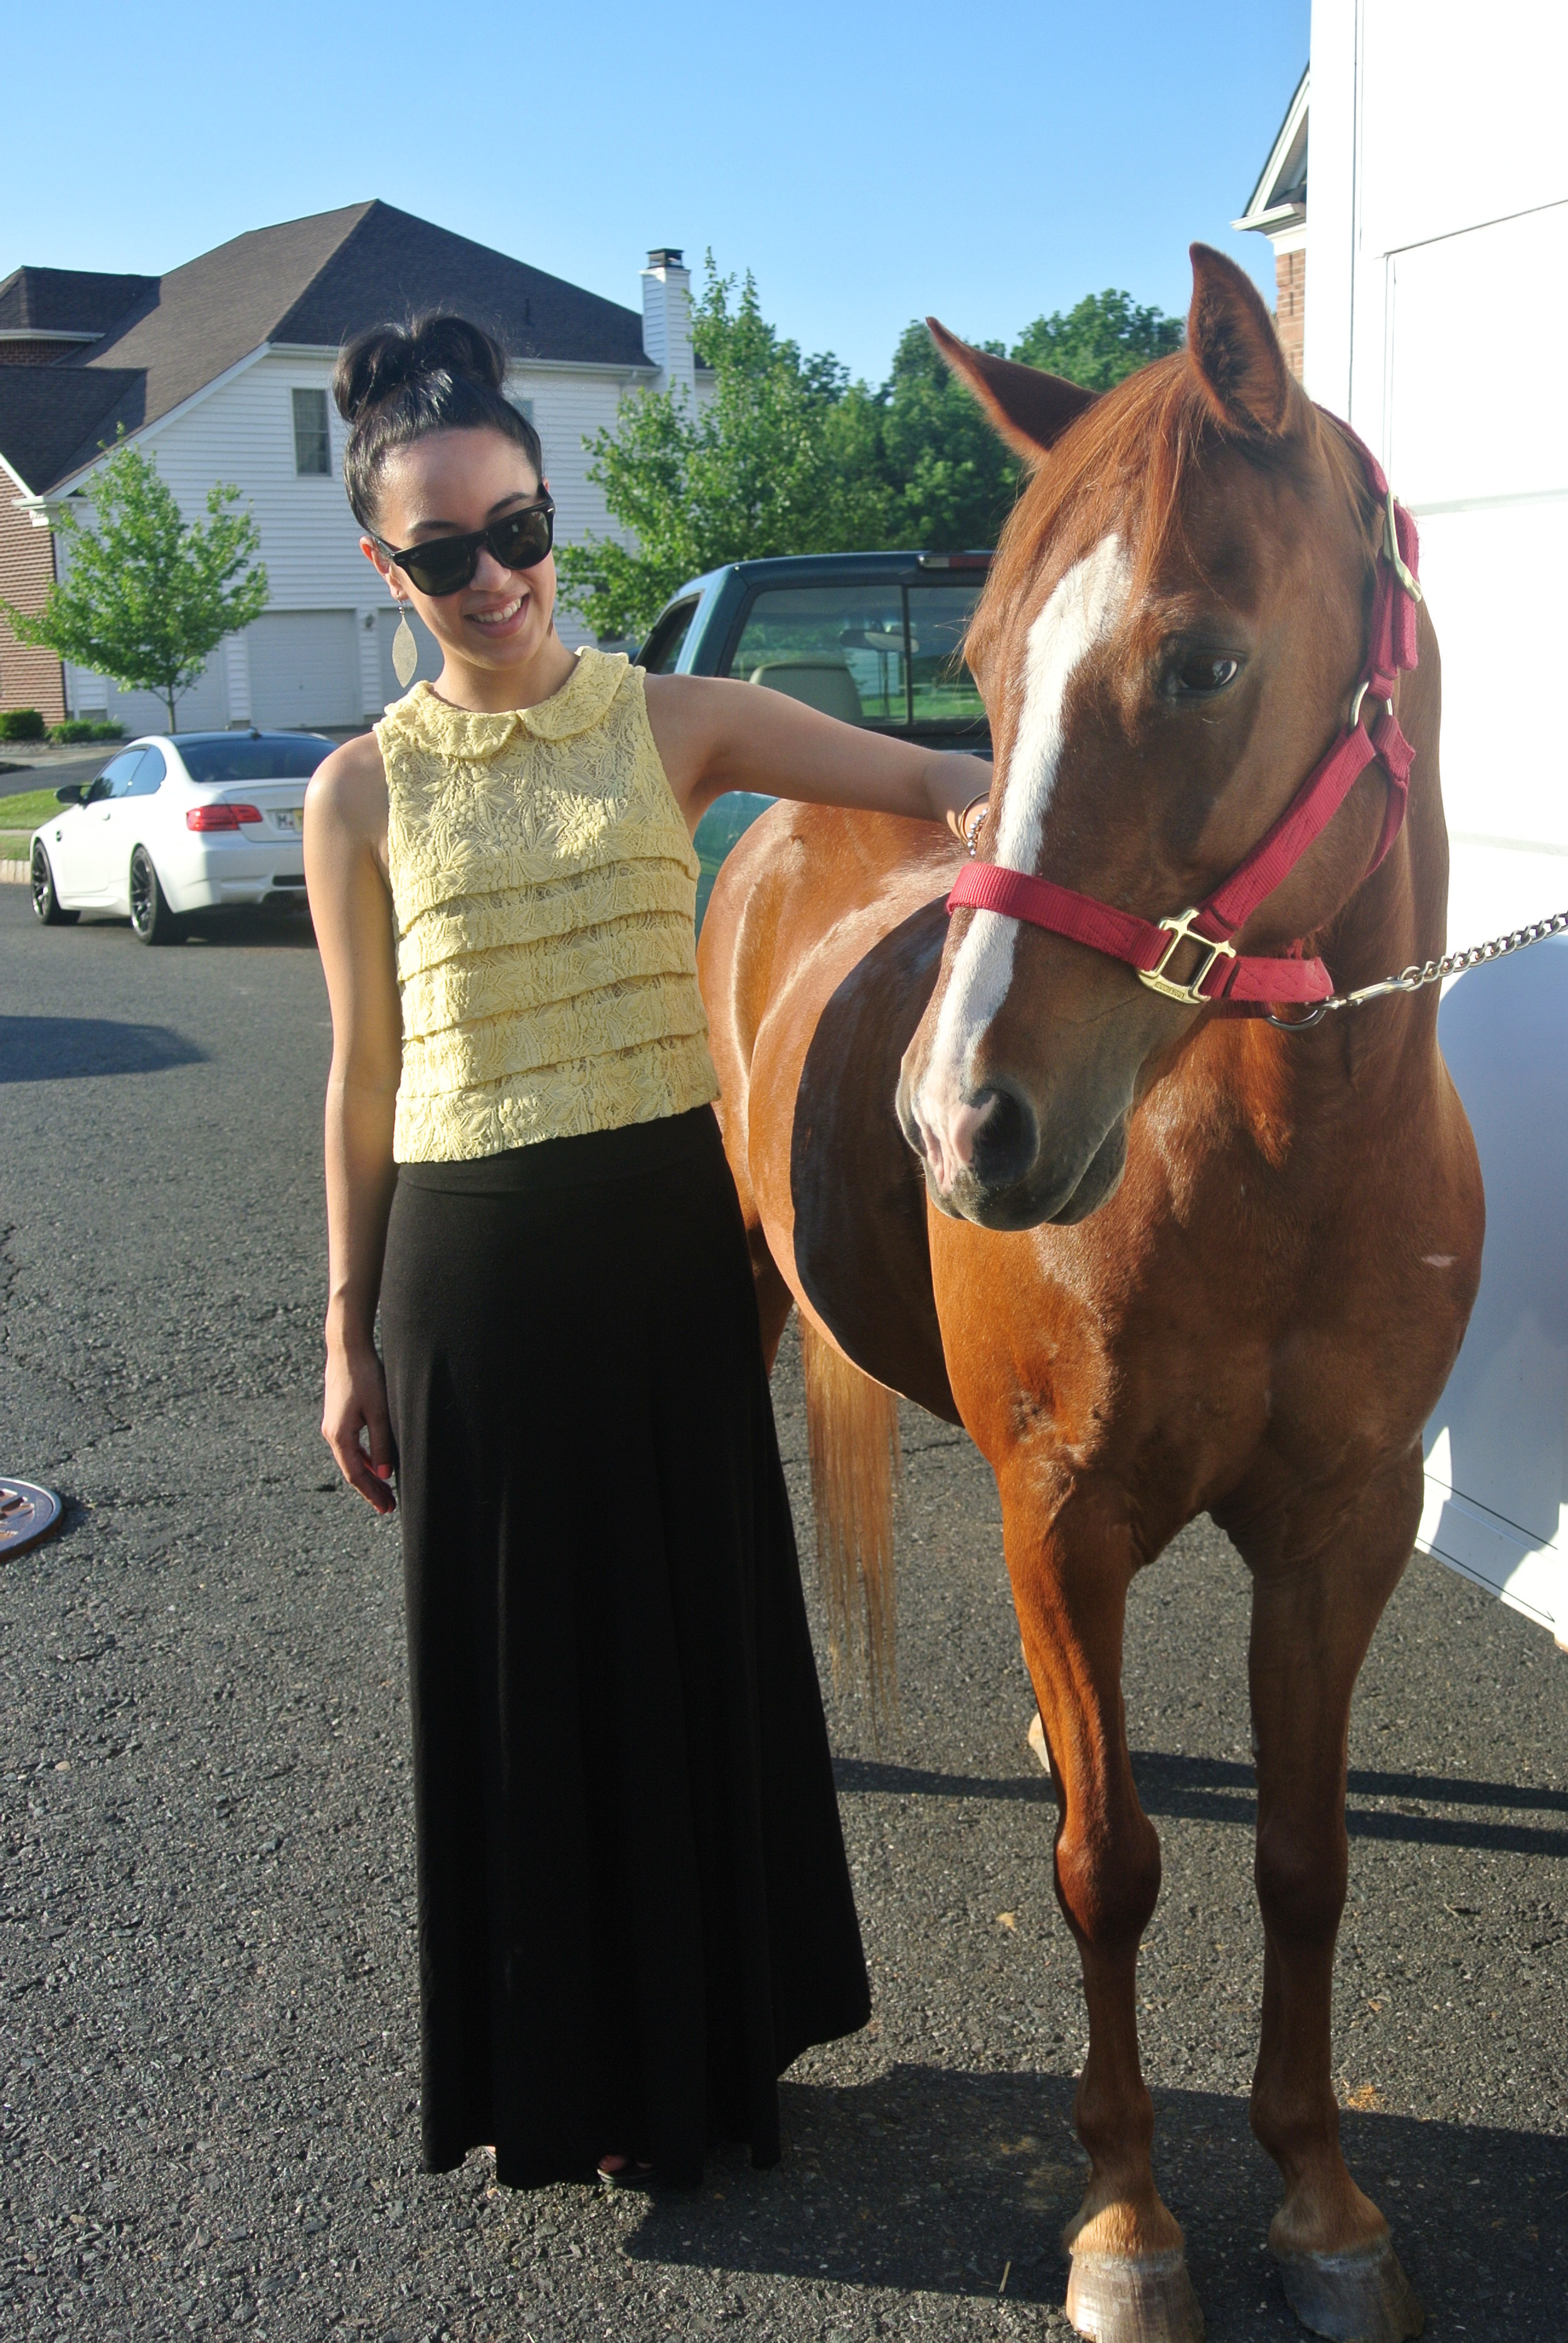 With Apple, one of TWO ponies at the party